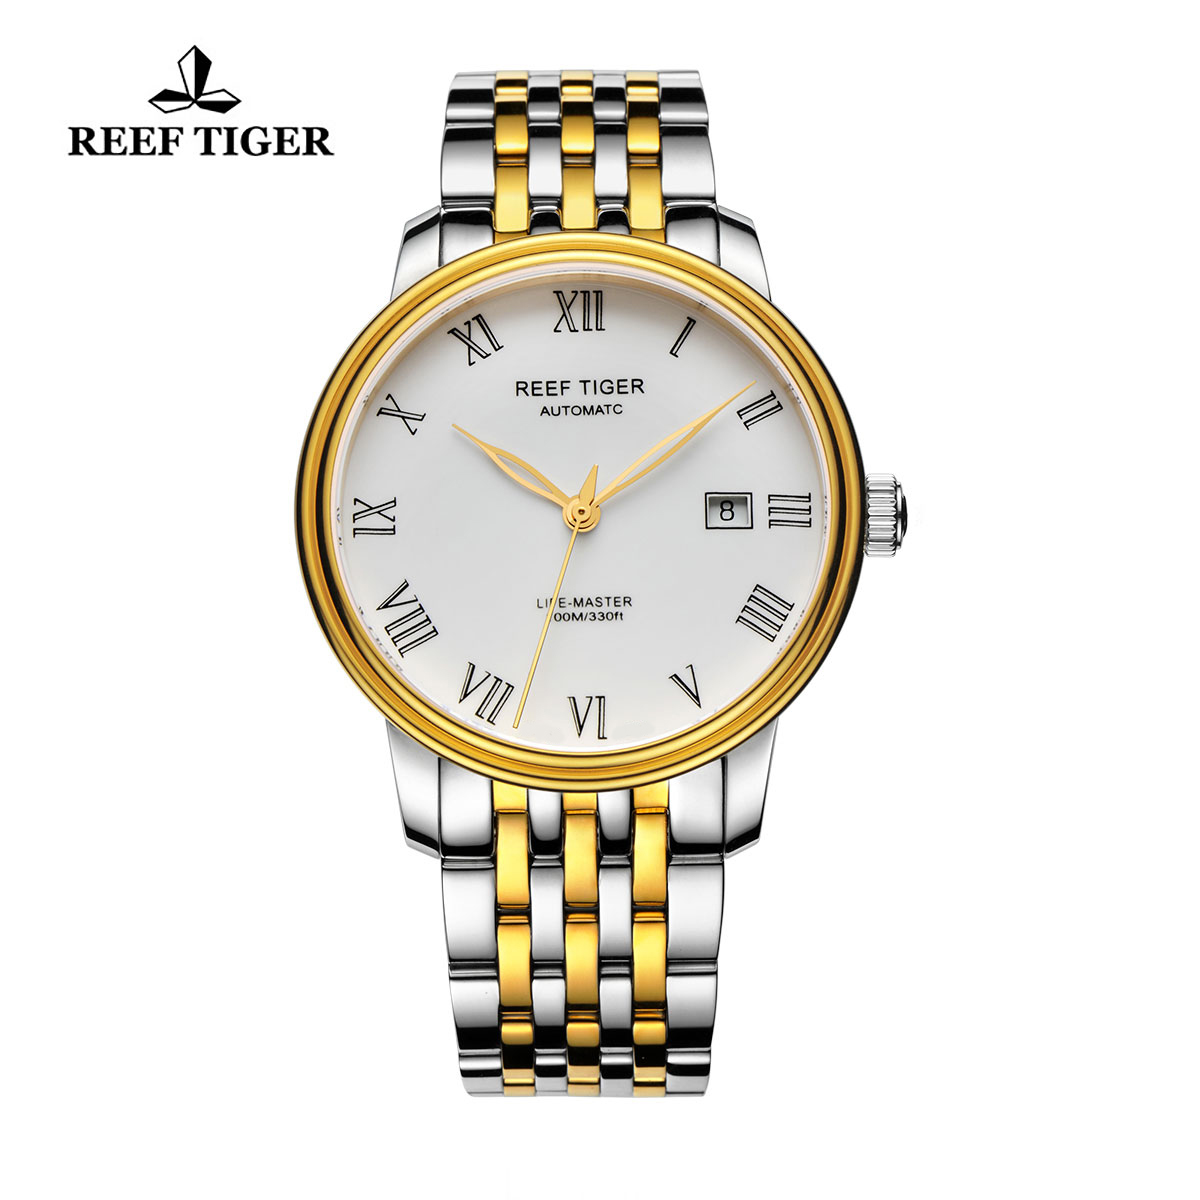 Reef Tiger Life-Master Dress Watch Automatic Yellow Gold/Steel White Dial RGA812-GWT